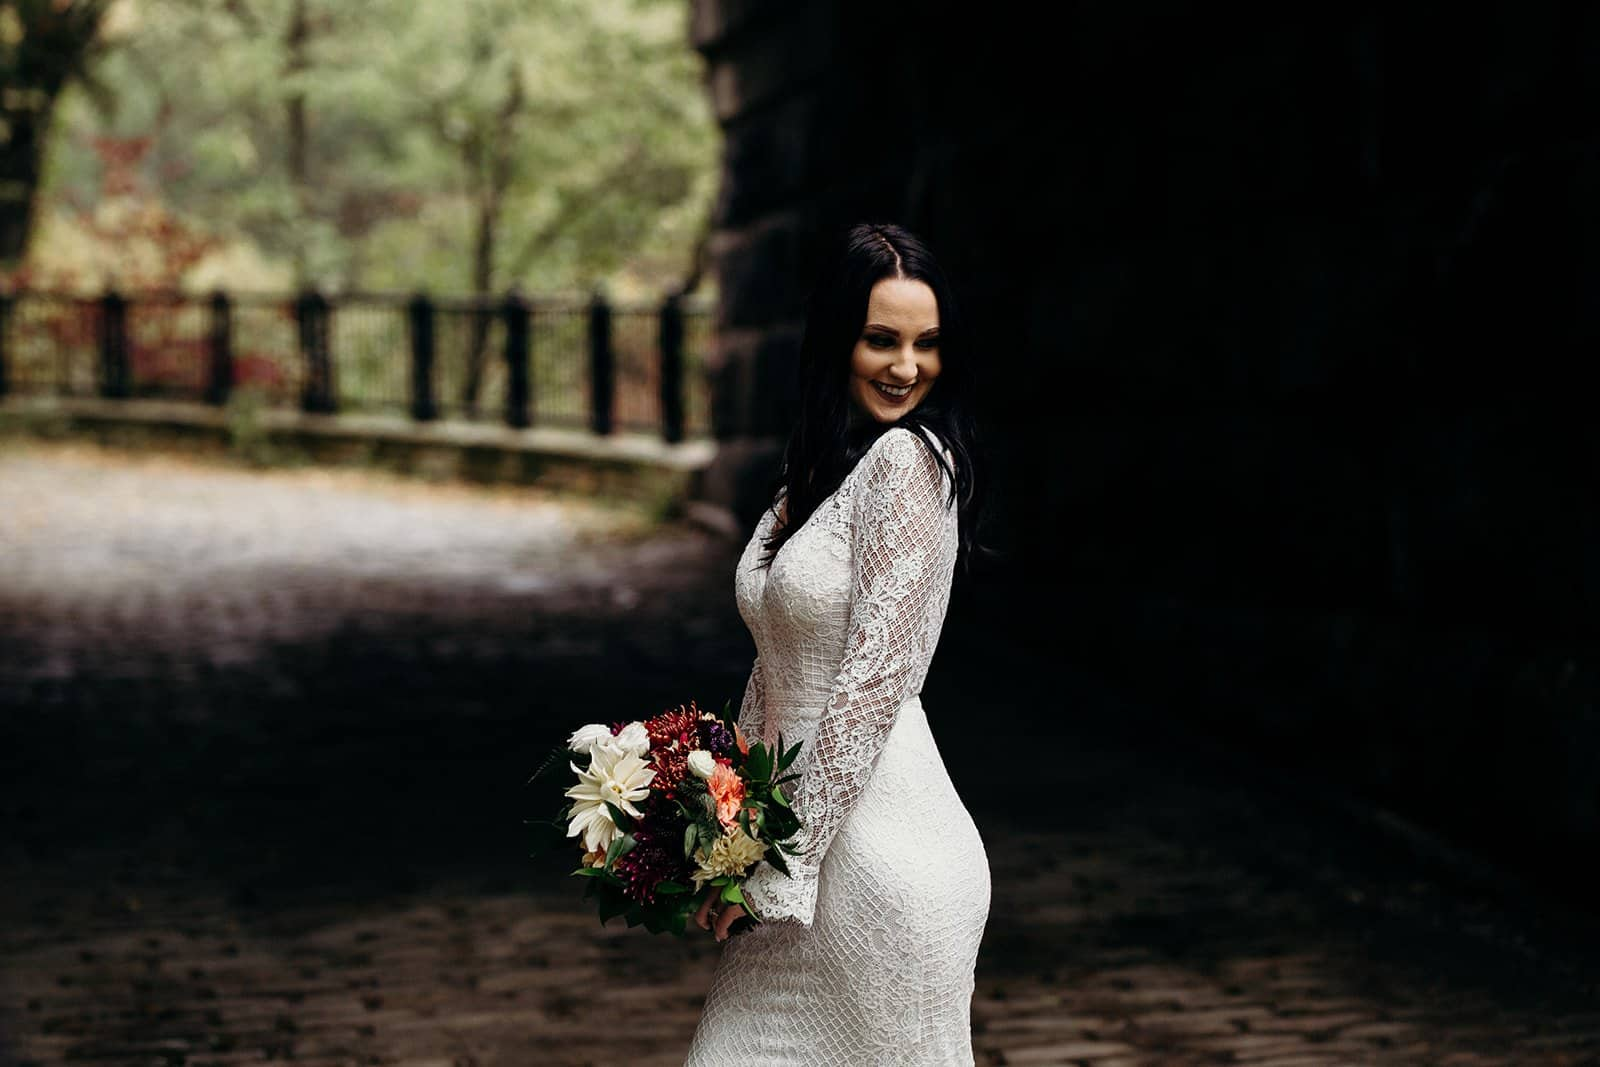 bride smiles and looks over her shoulder while holding flowers